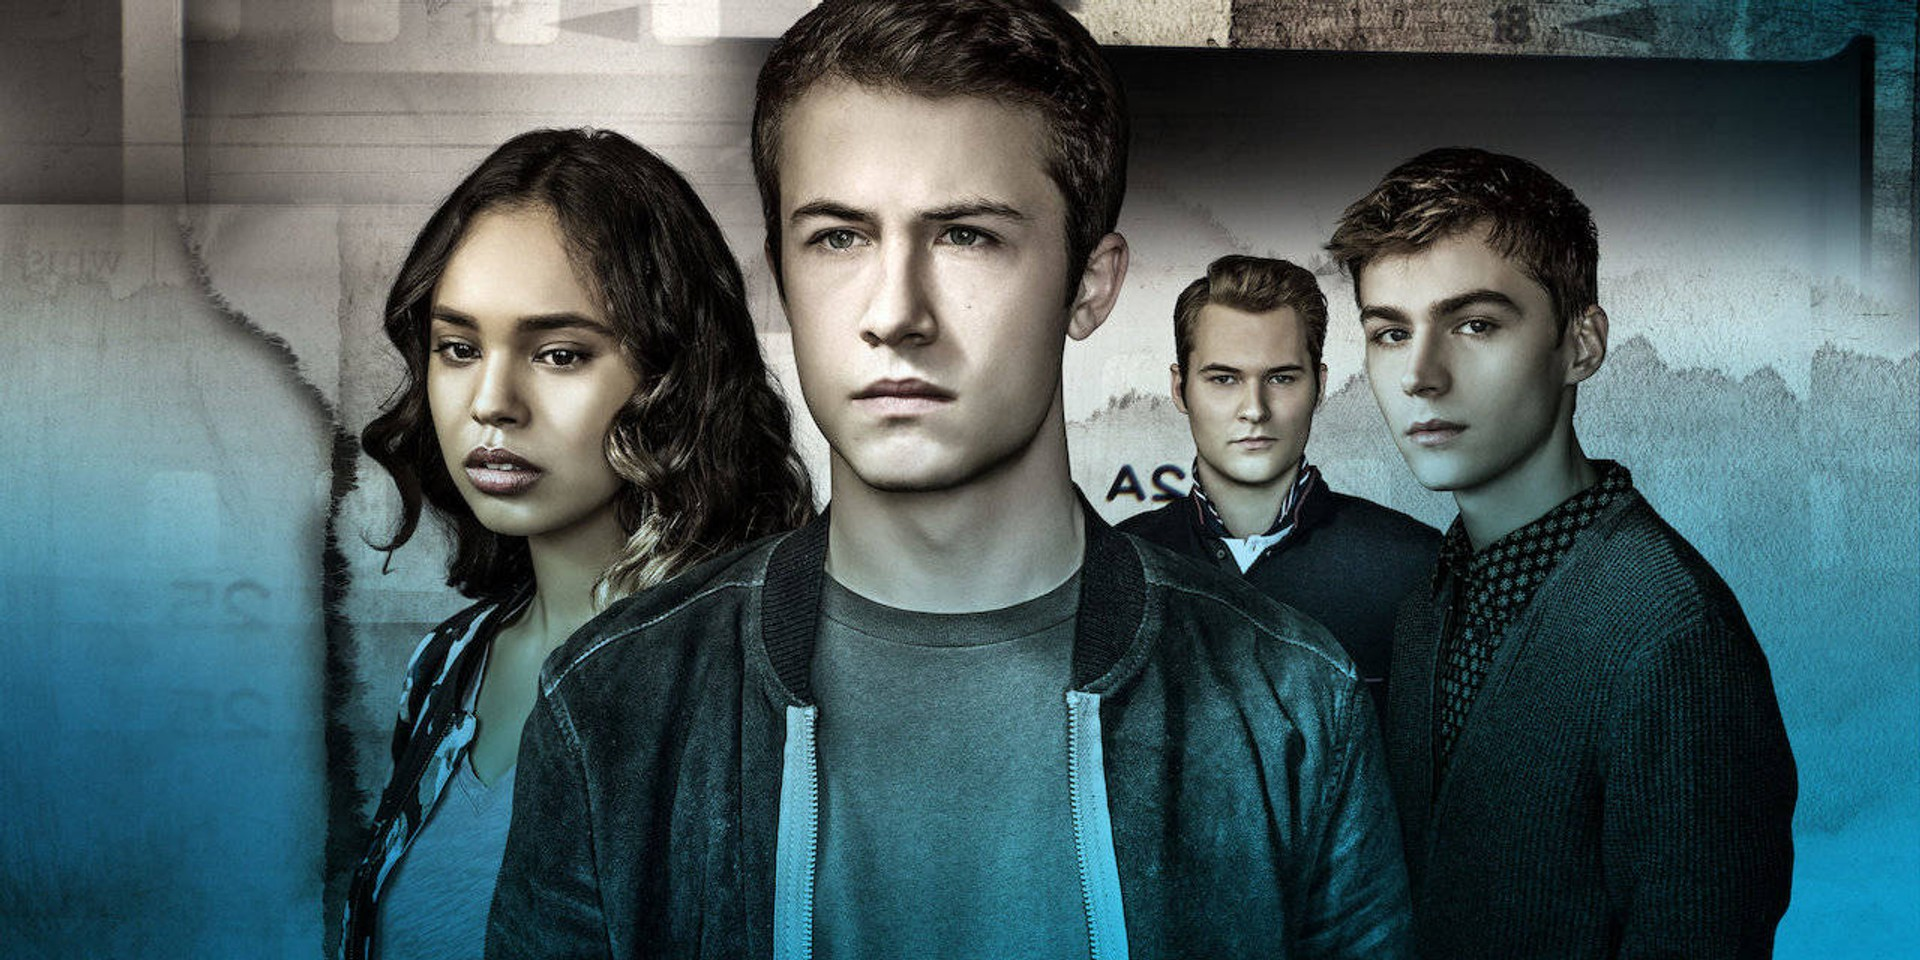 Tracklist for 13 Reasons Why Season 3 soundtrack announced – Charli XCX, YUNGBLUD, 5 Seconds of Summer, and more confirmed